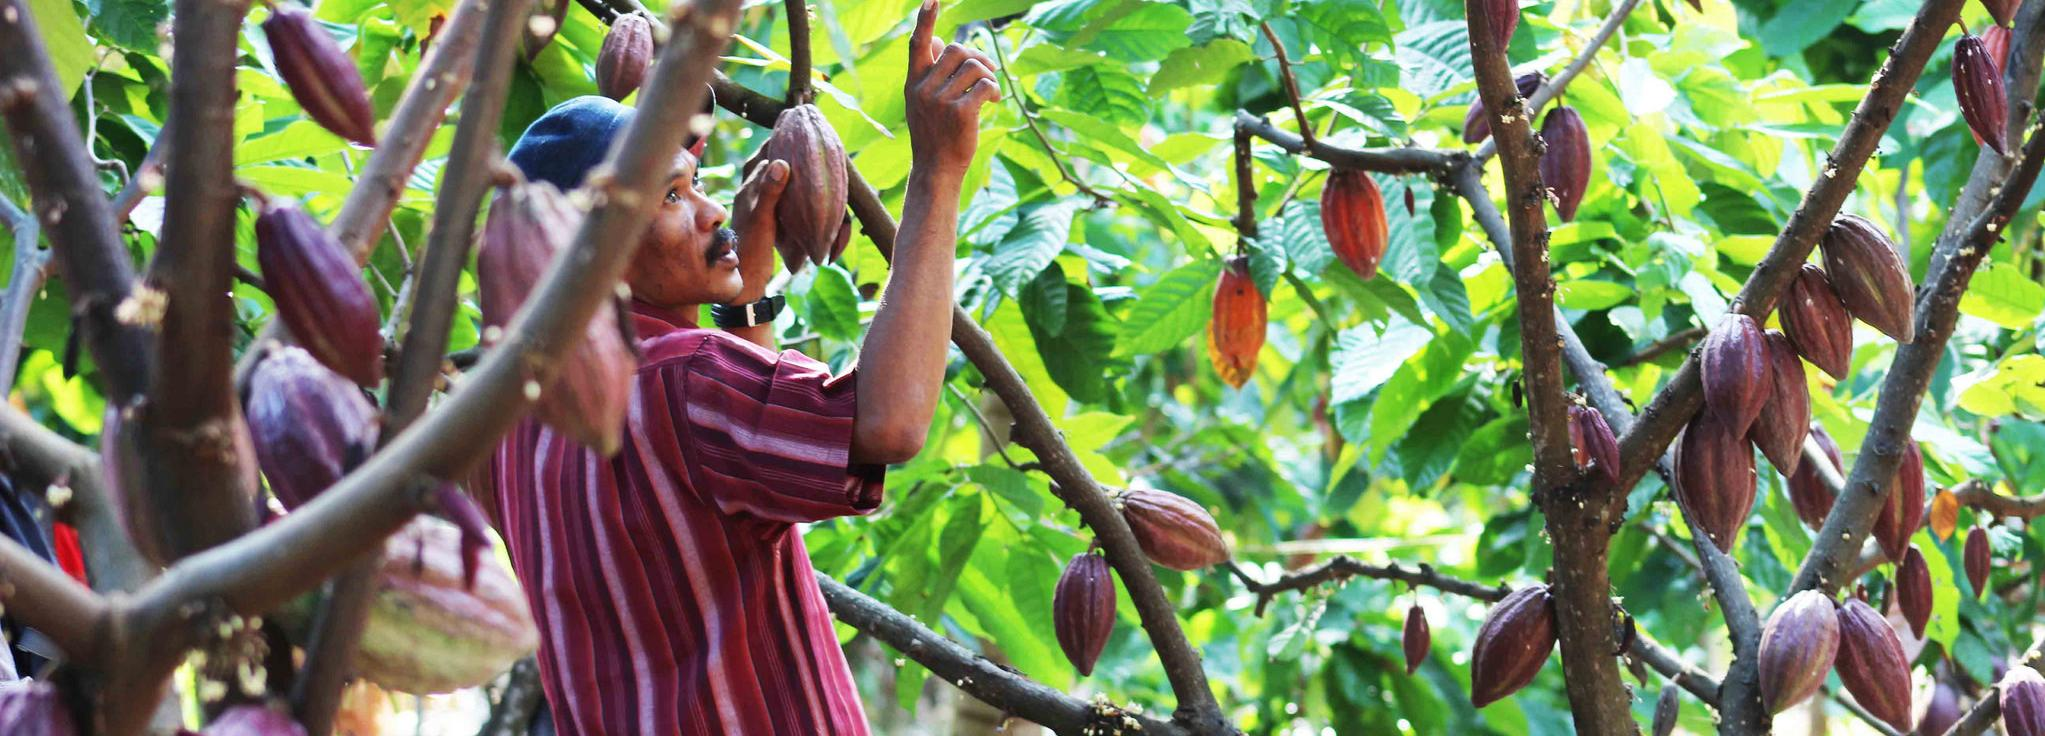 Cocoa, Indonesia © Sustainable Agriculture Network